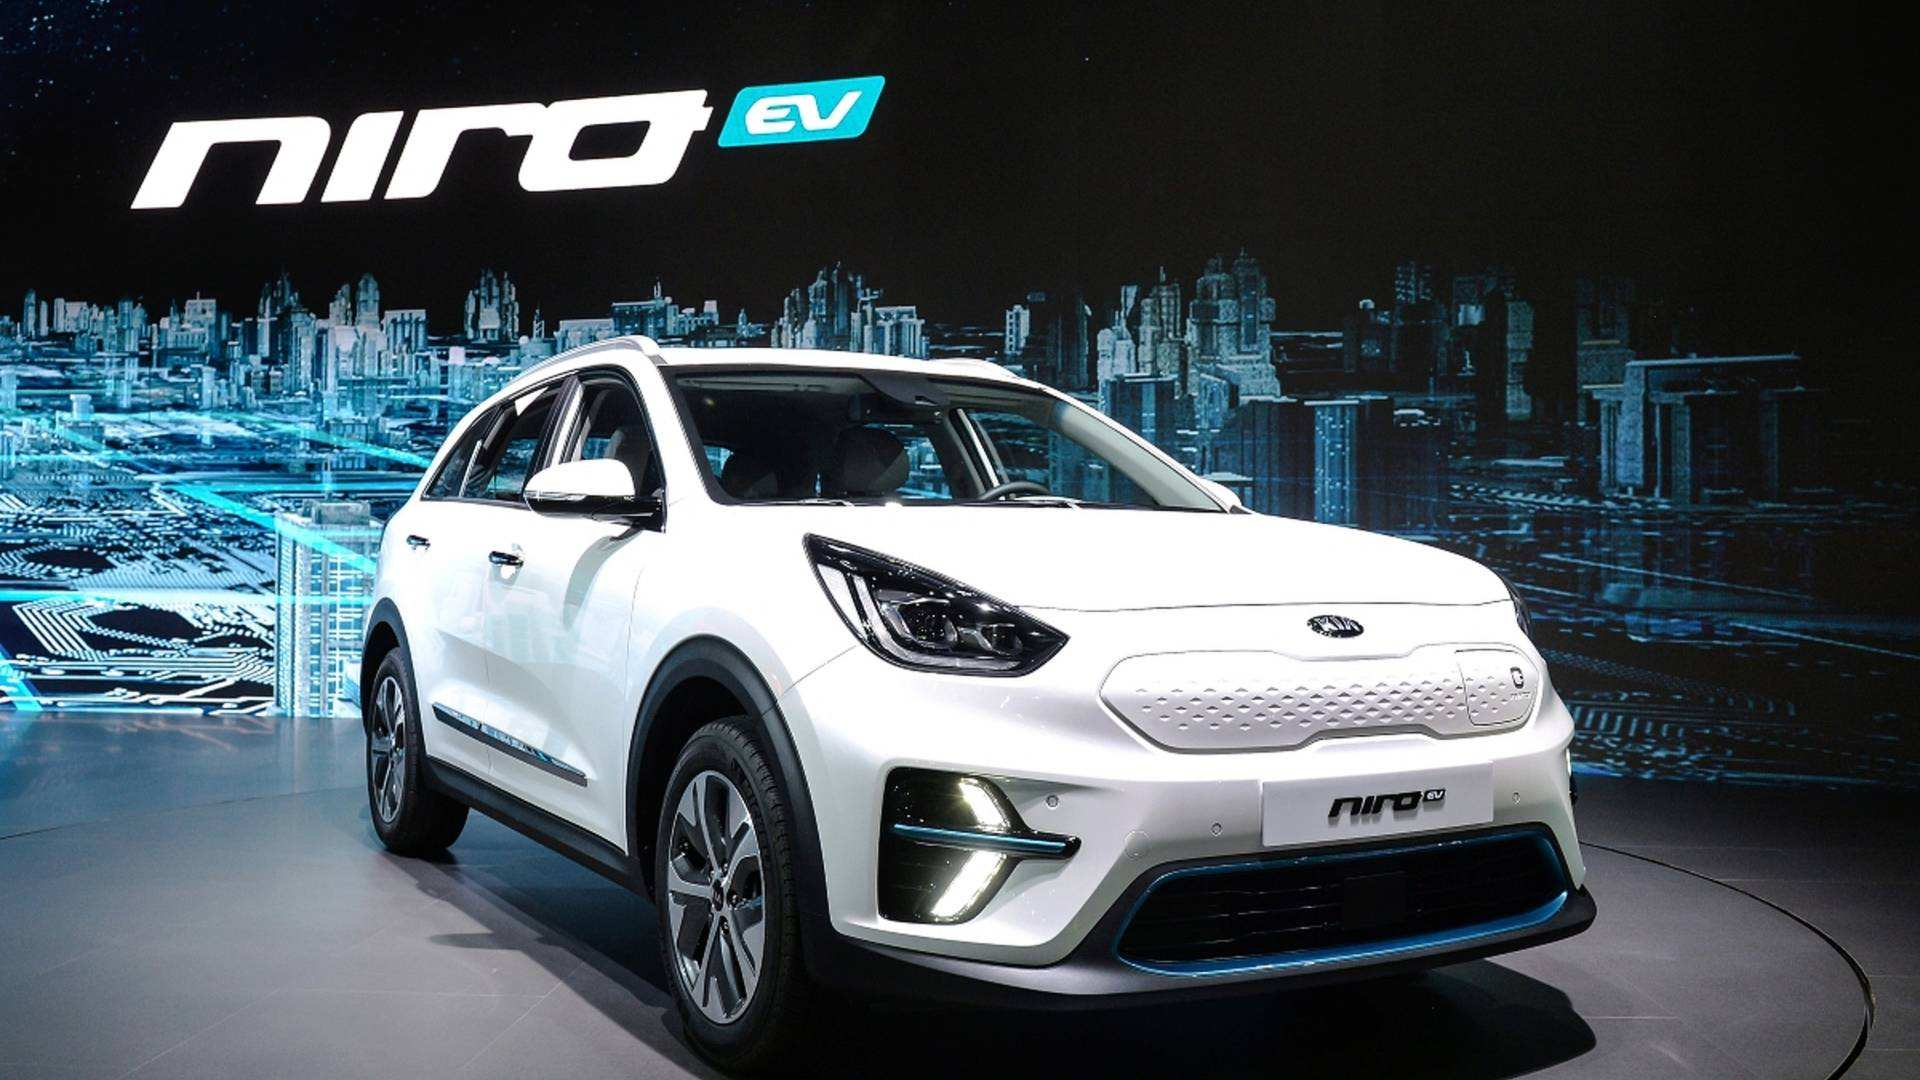 49 Concept of Kia 2019 Niro Ratings for Kia 2019 Niro